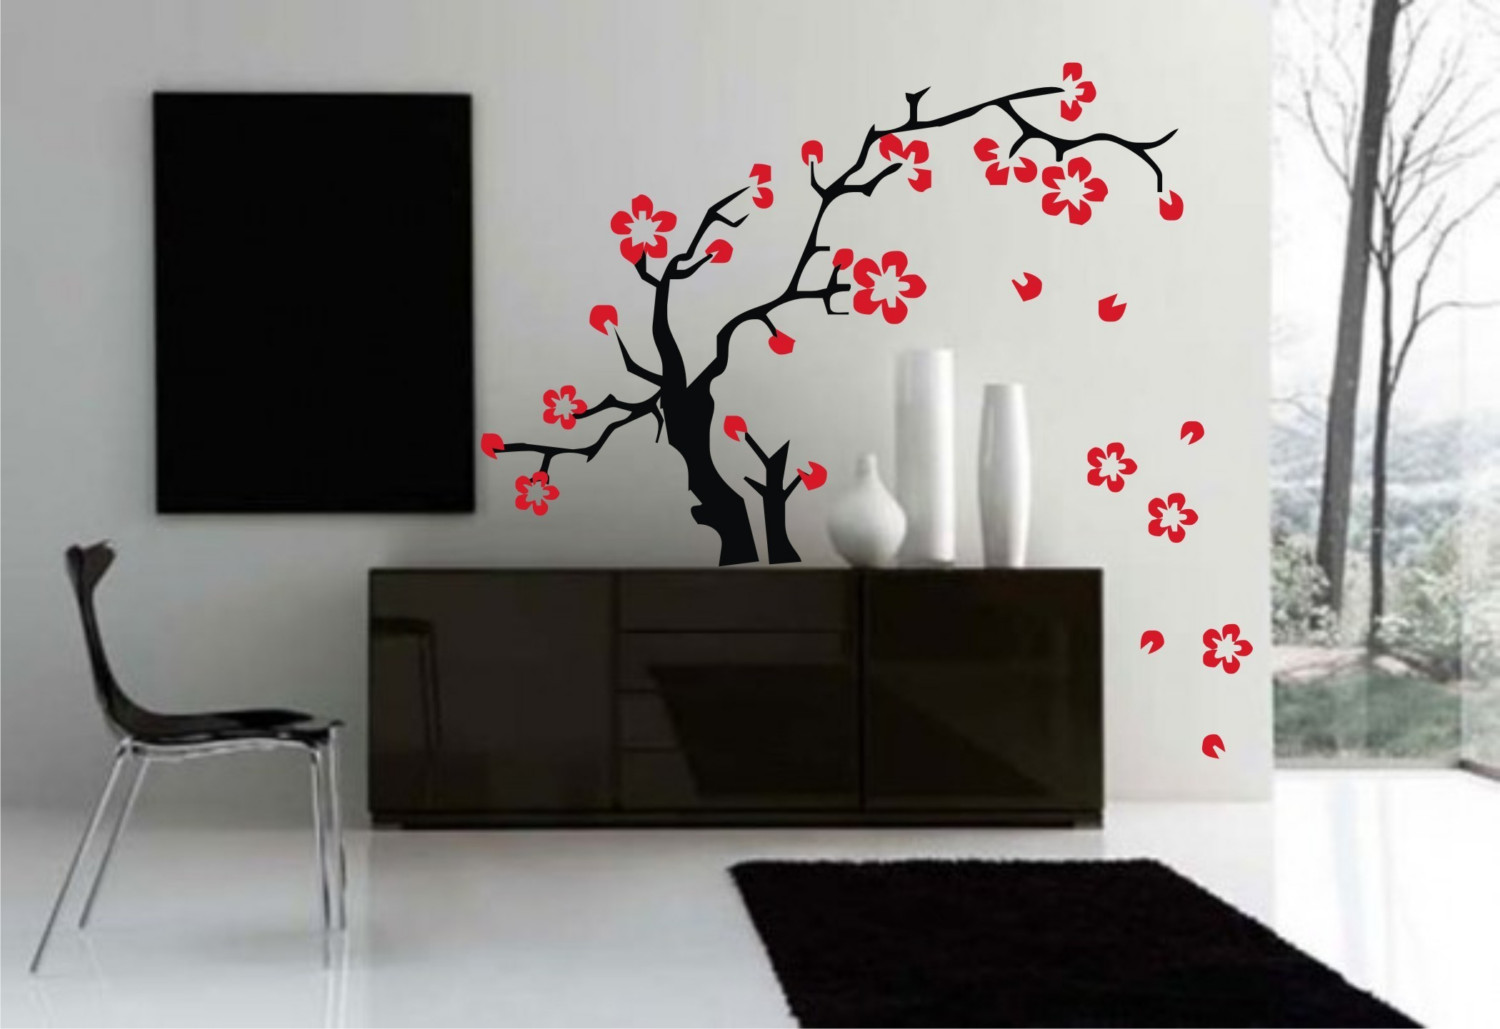 Japanese style decor apartments i like blog - Decorative wall sticker ...